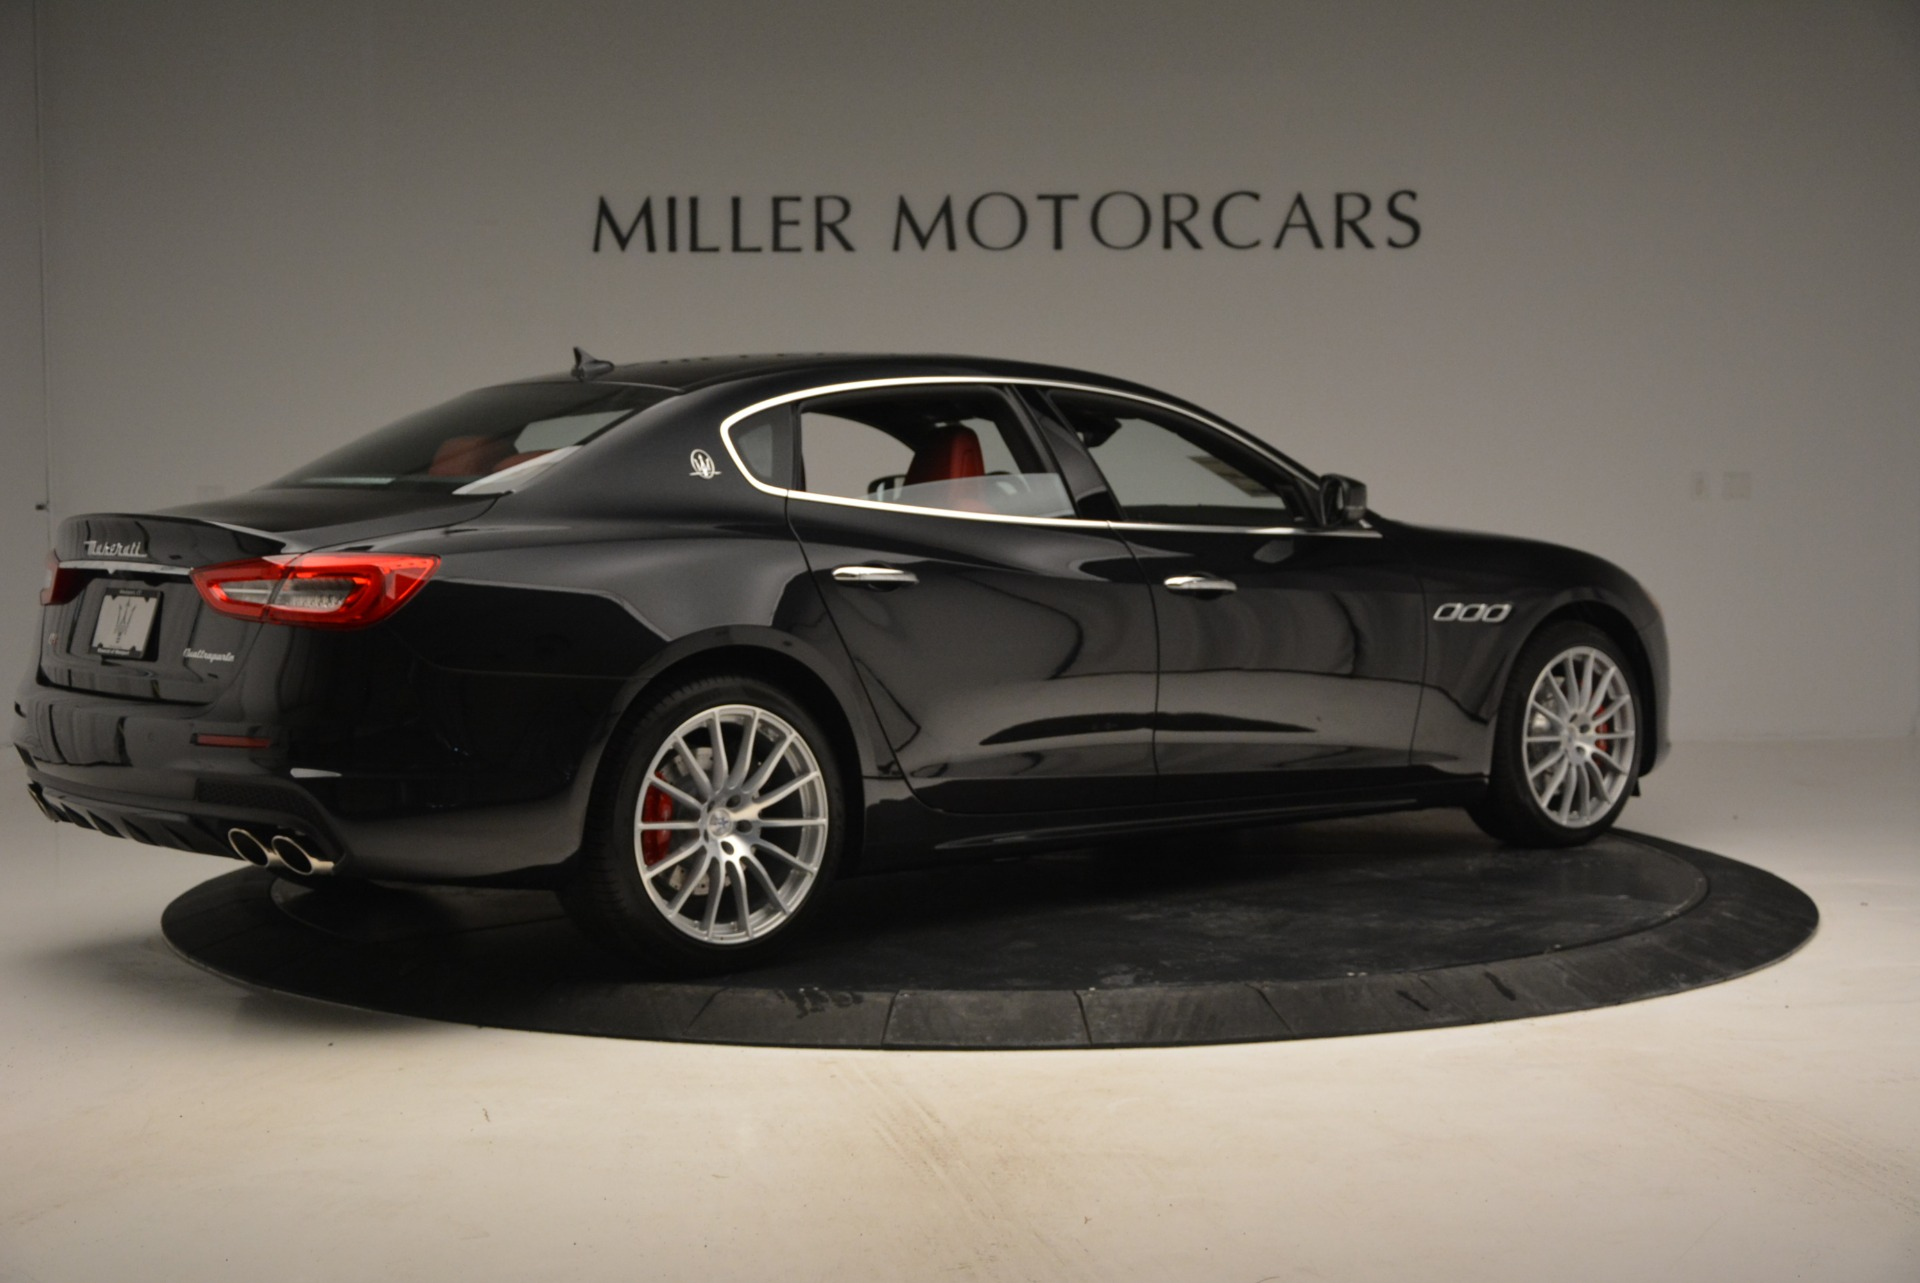 New 2017 Maserati Quattroporte S Q4 GranSport For Sale In Westport, CT 790_p8